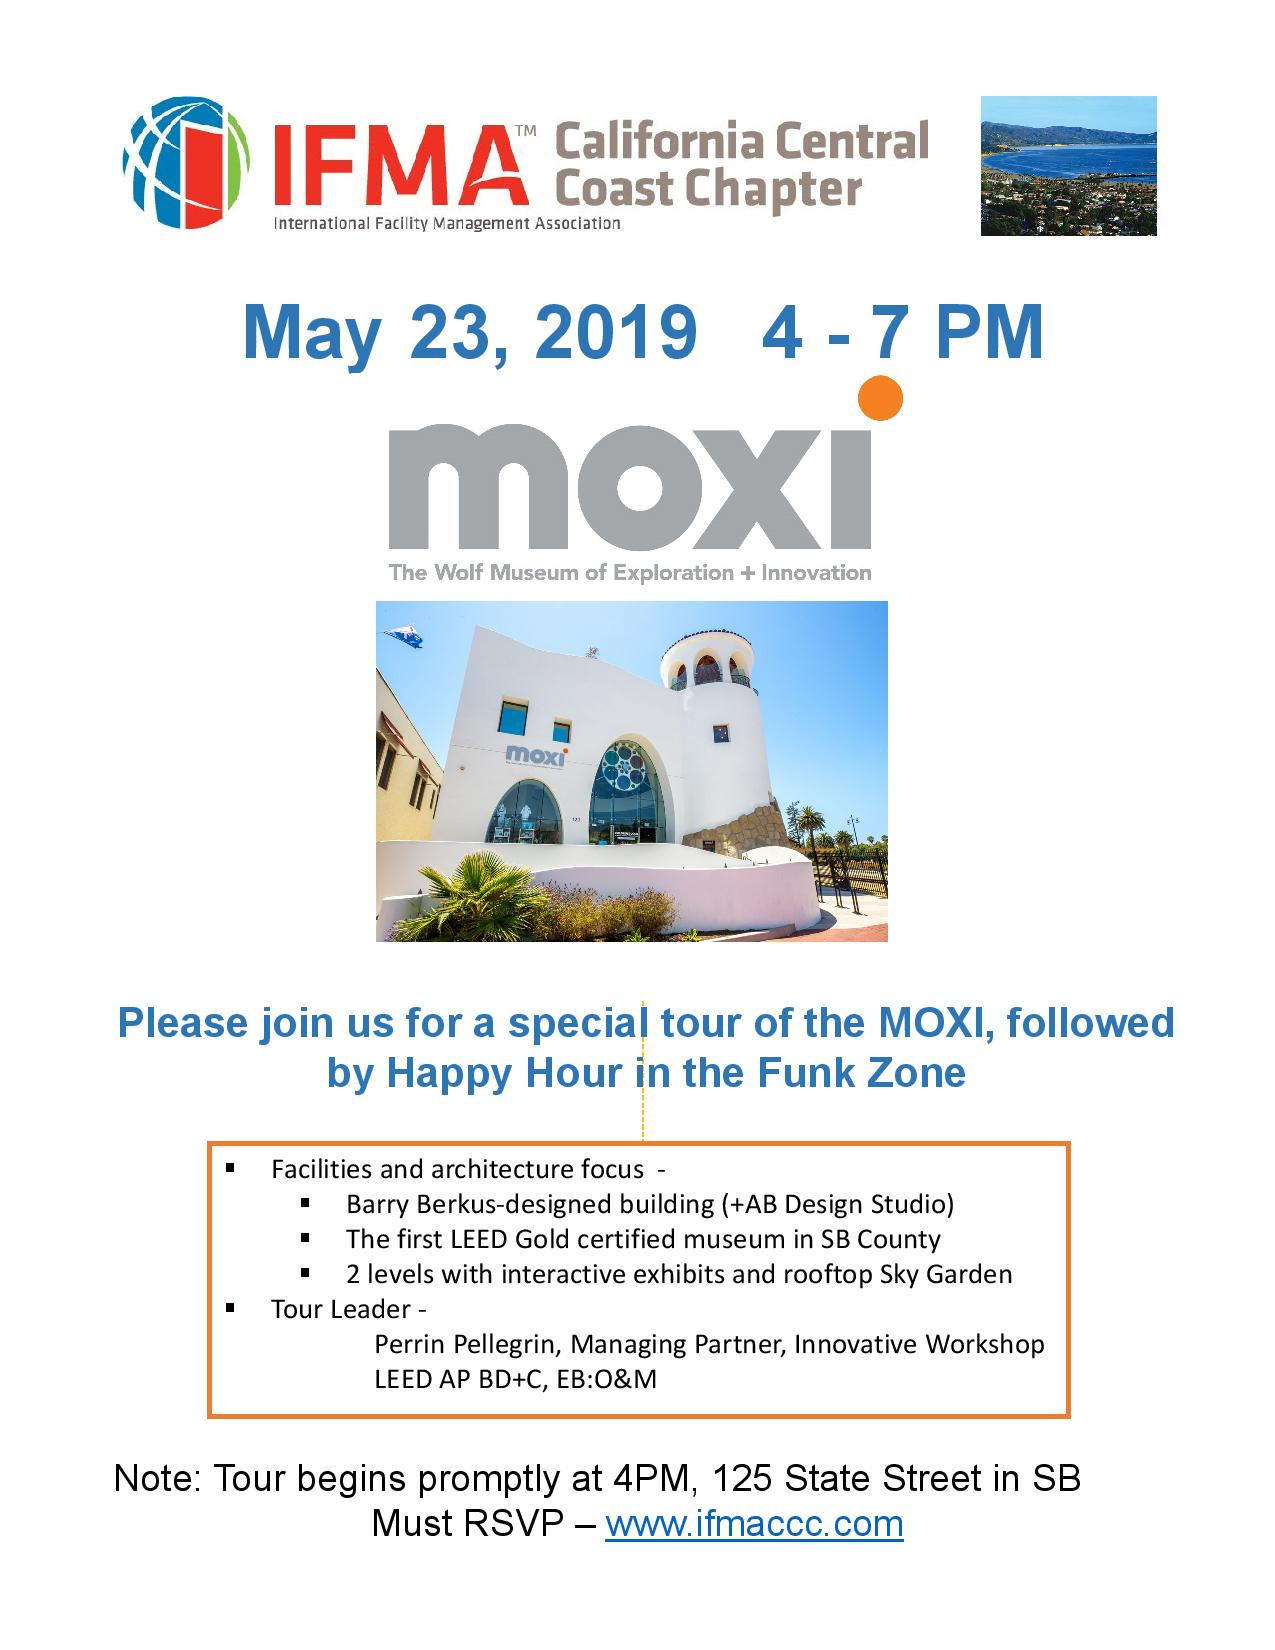 Moxi Museum Tour and Happy Hour